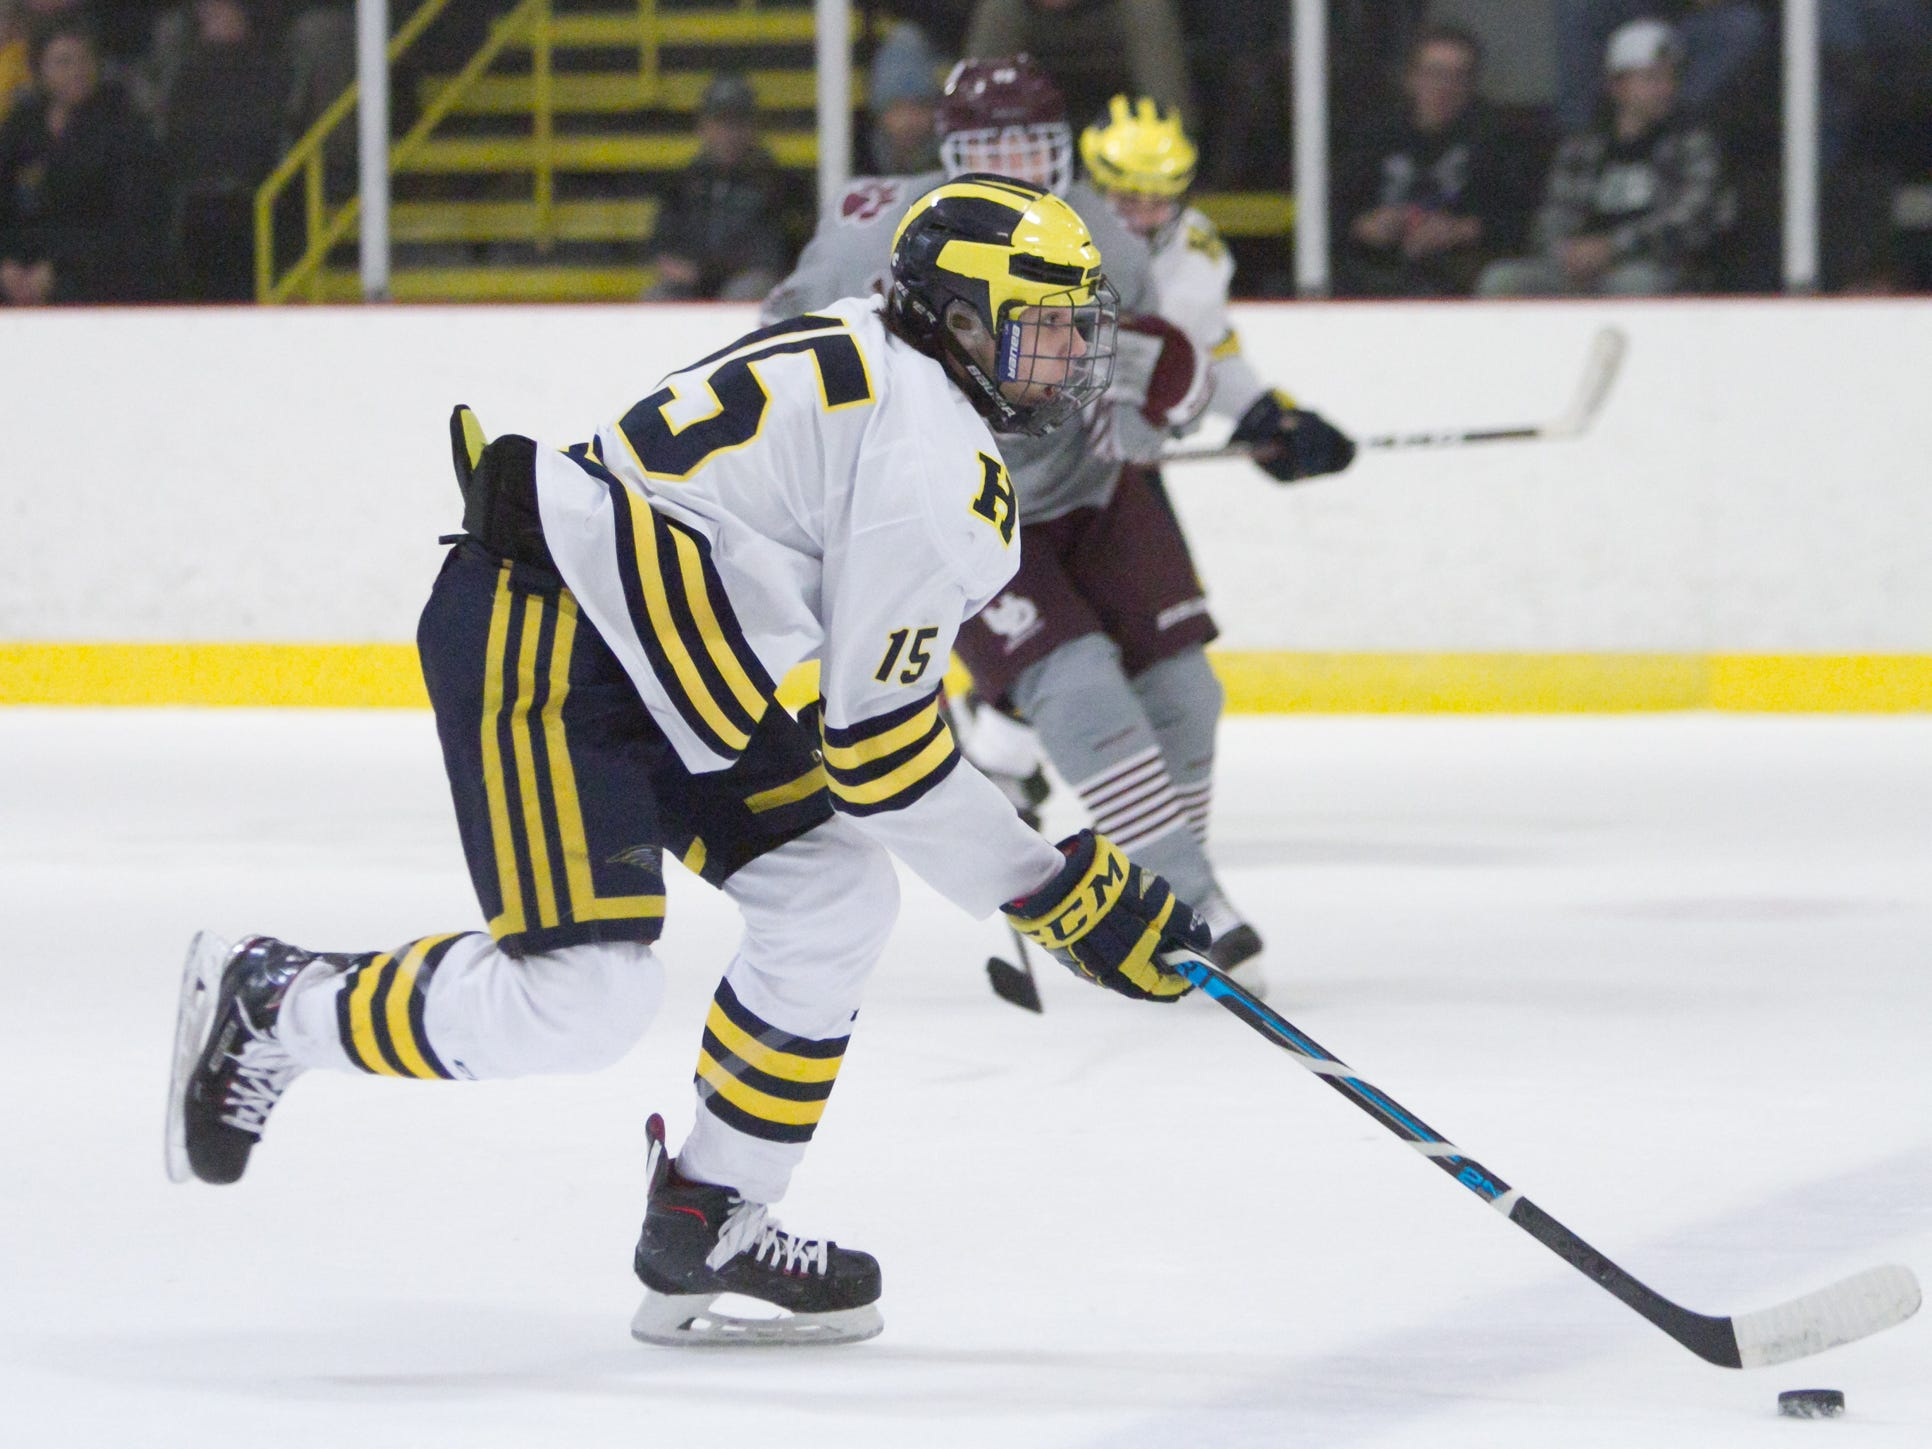 John Druskinis of Hartland carries the puck in a 2-1 victory over Detroit U of D Jesuit on Friday, Jan. 11, 2019 at Hartland Sports Center.